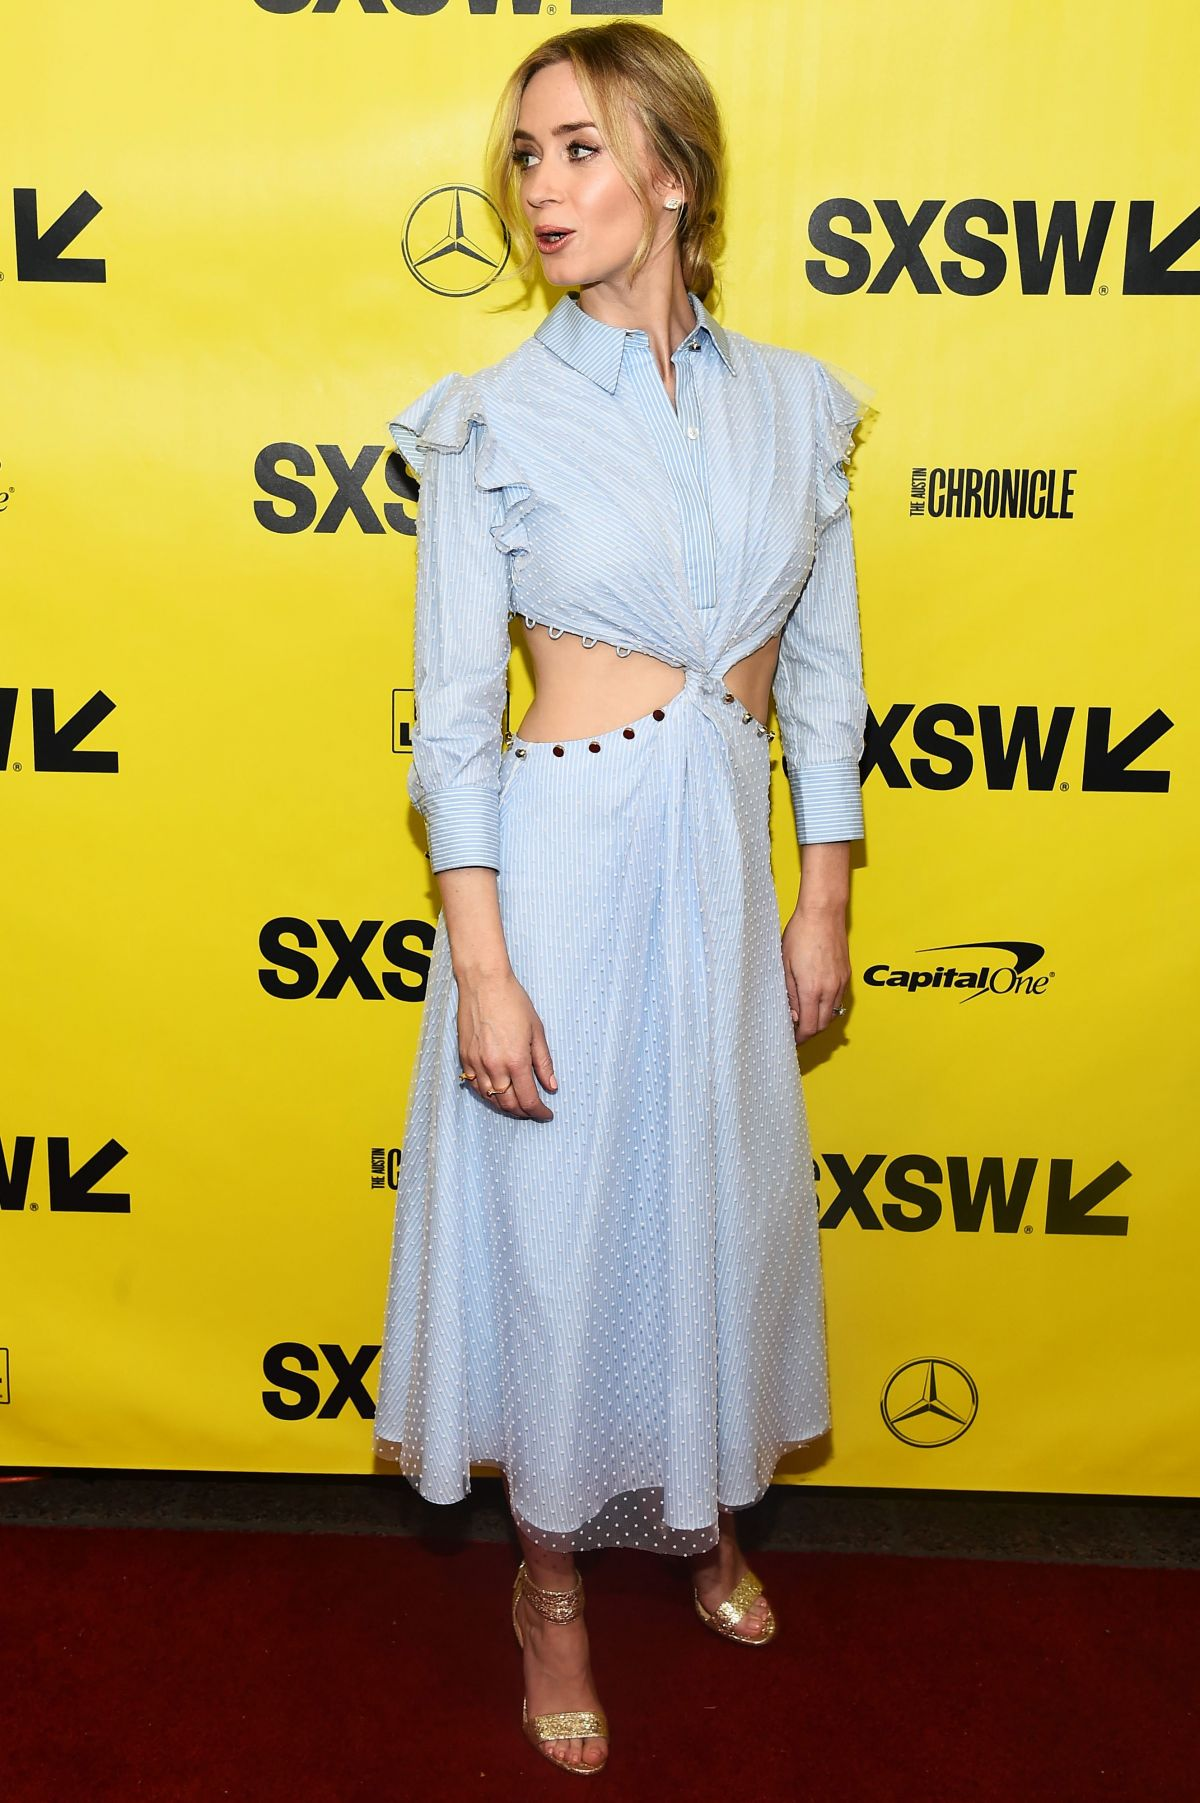 Emily Blunt At 'A Quiet Place' premiere at SXSW in Austin ...